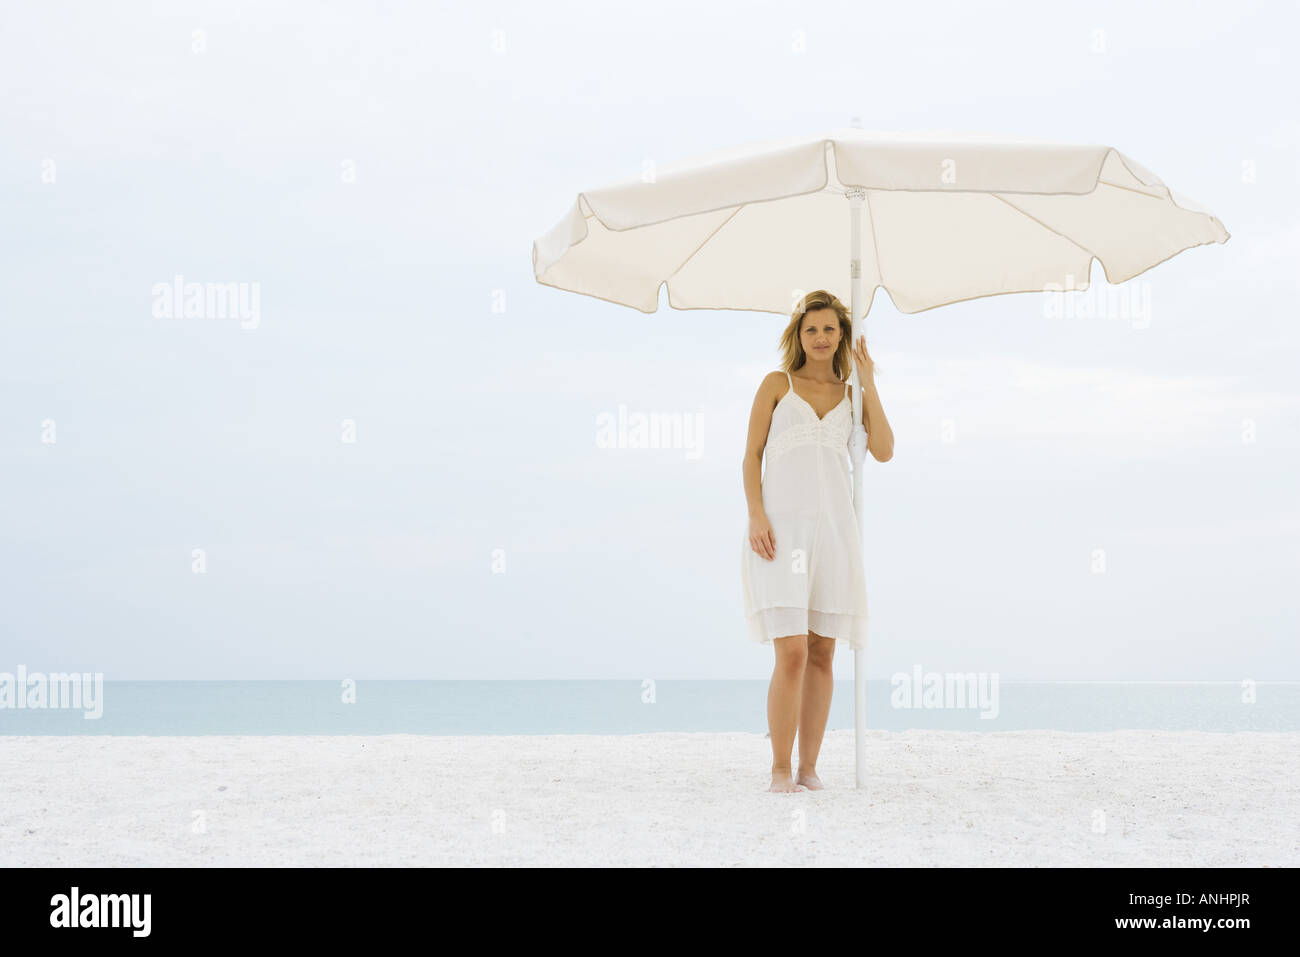 Woman in sundress standing under umbrella at the beach, looking at camera - Stock Image